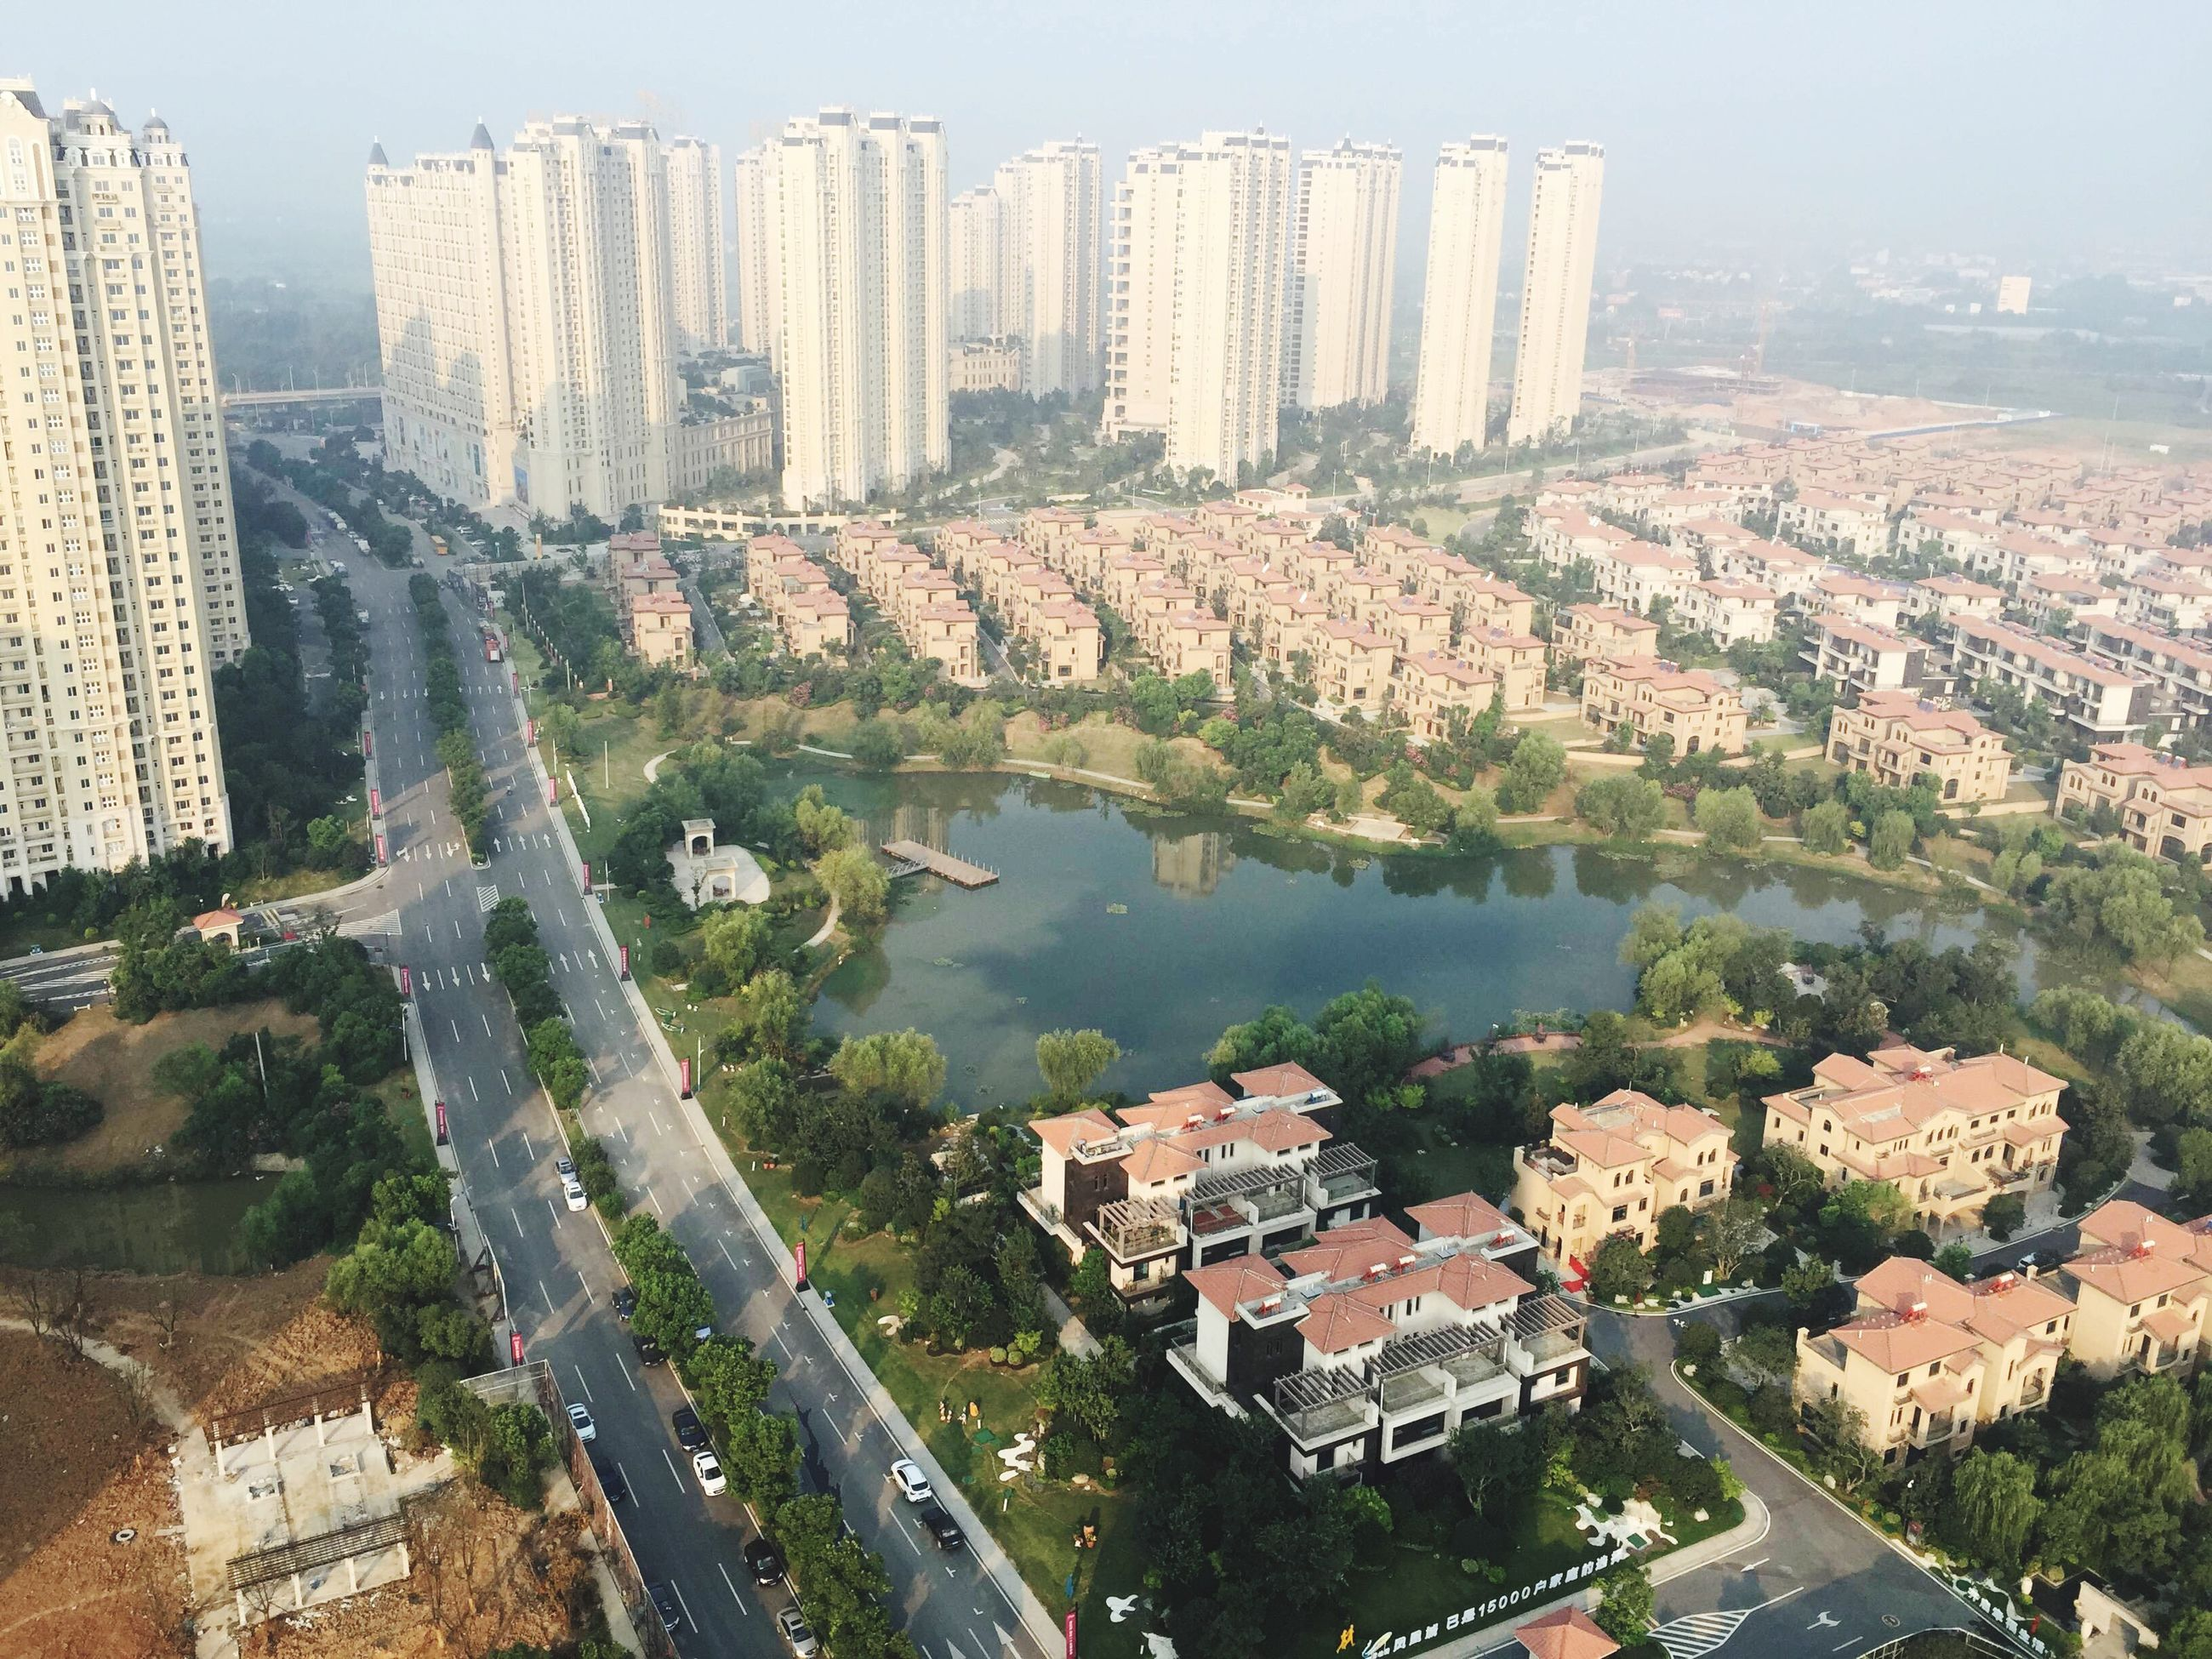 building exterior, architecture, built structure, city, cityscape, water, residential district, high angle view, residential structure, residential building, crowded, river, house, town, tree, clear sky, townscape, day, outdoors, no people